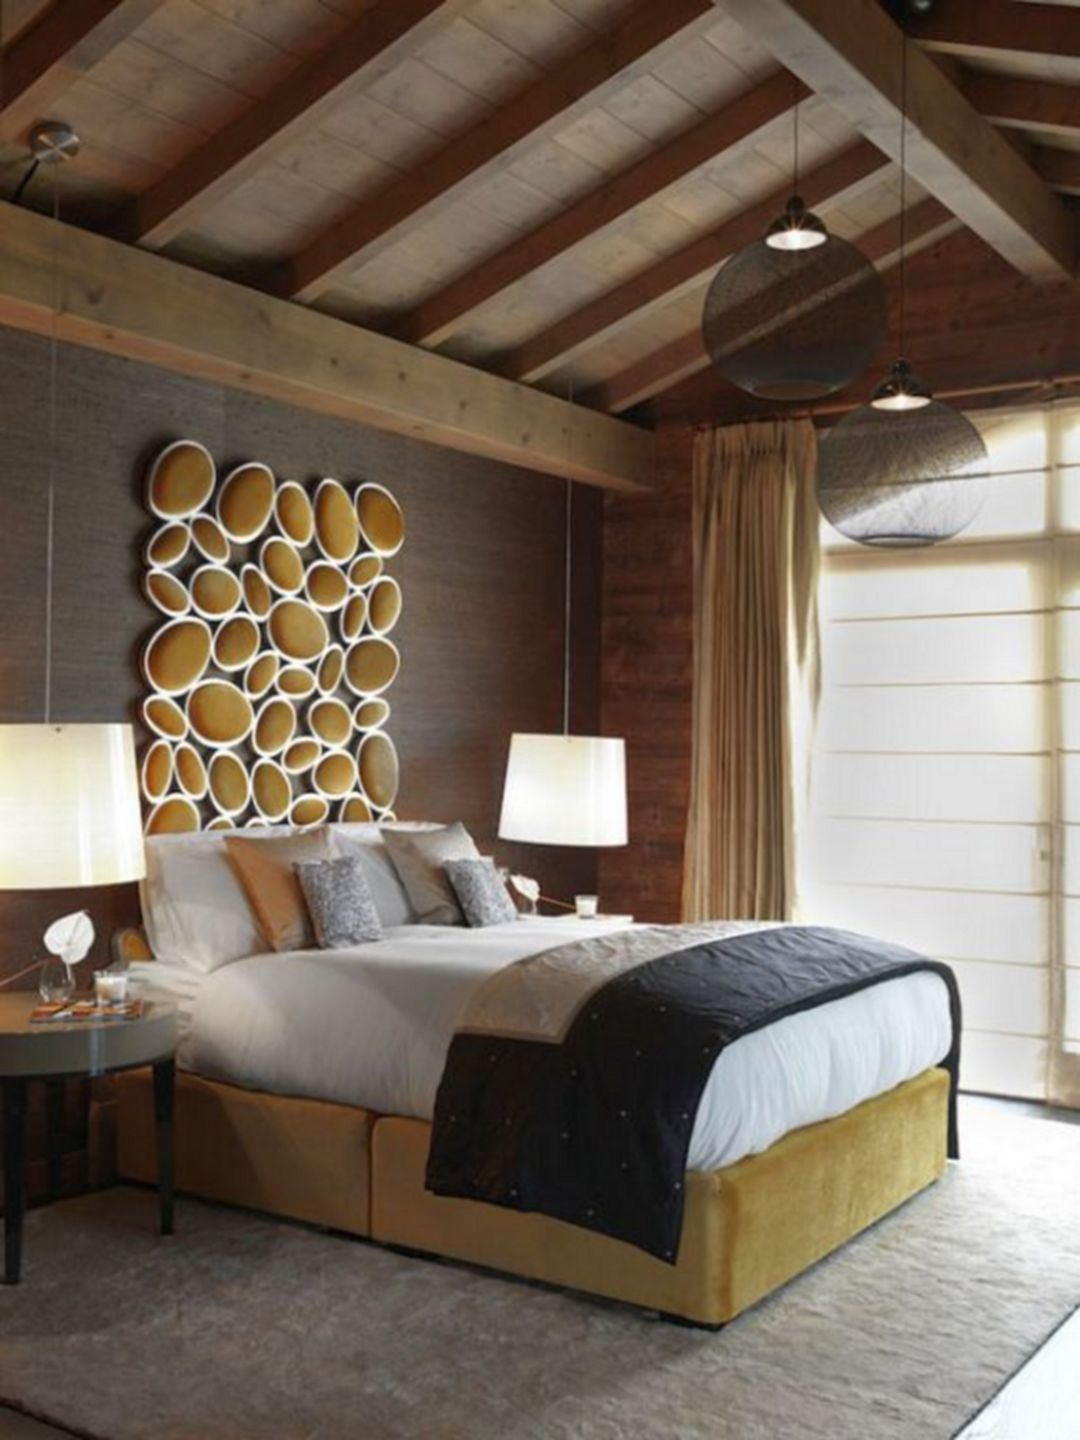 30 vaulted ceiling bedroom design ideas for inspiration httpdecorathingcombedroom ideas30 vaulted ceiling bedroom design ideas for inspiration - Inspirational Vaulted Ceiling Bedroom